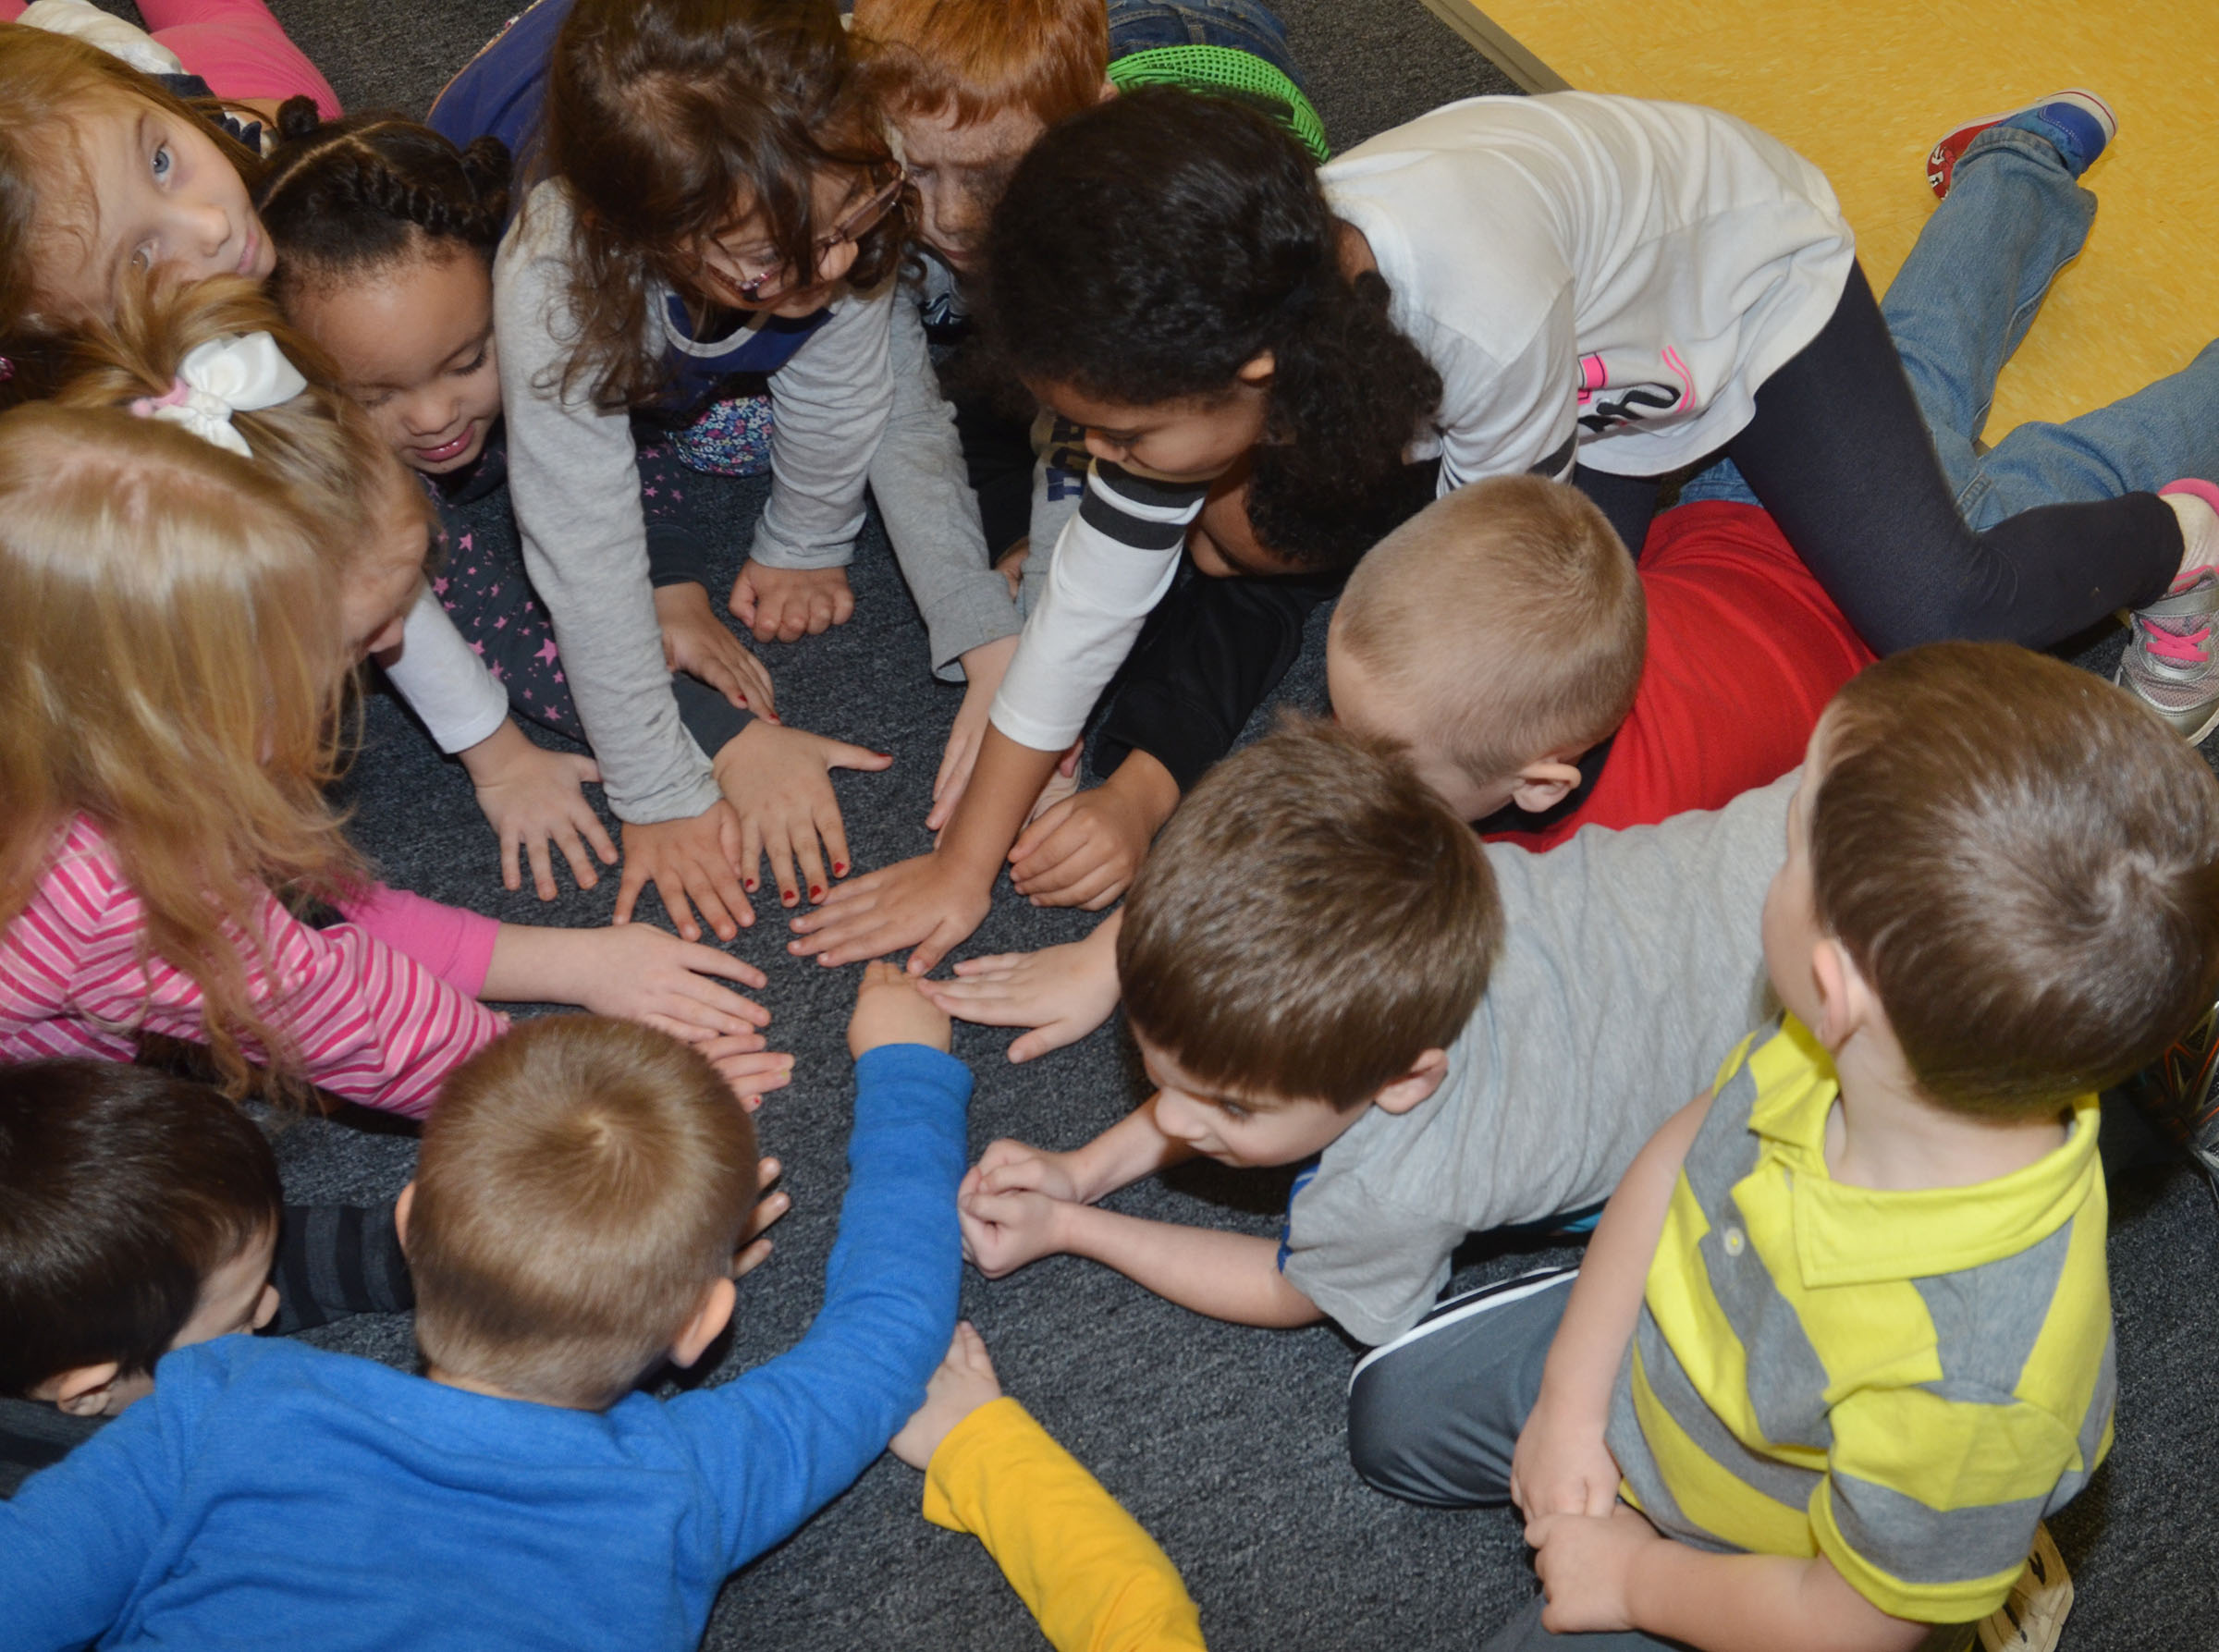 CES preschool students place their hands in a circle to see if any two people have the same skin color. Students agreed that they don't, but they are all equal and important.